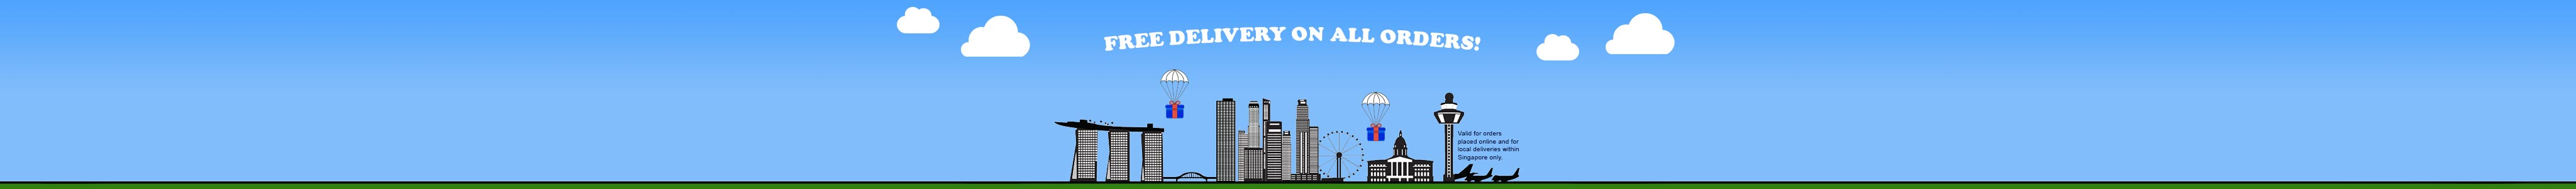 Free Delivery from Sim Lim Square